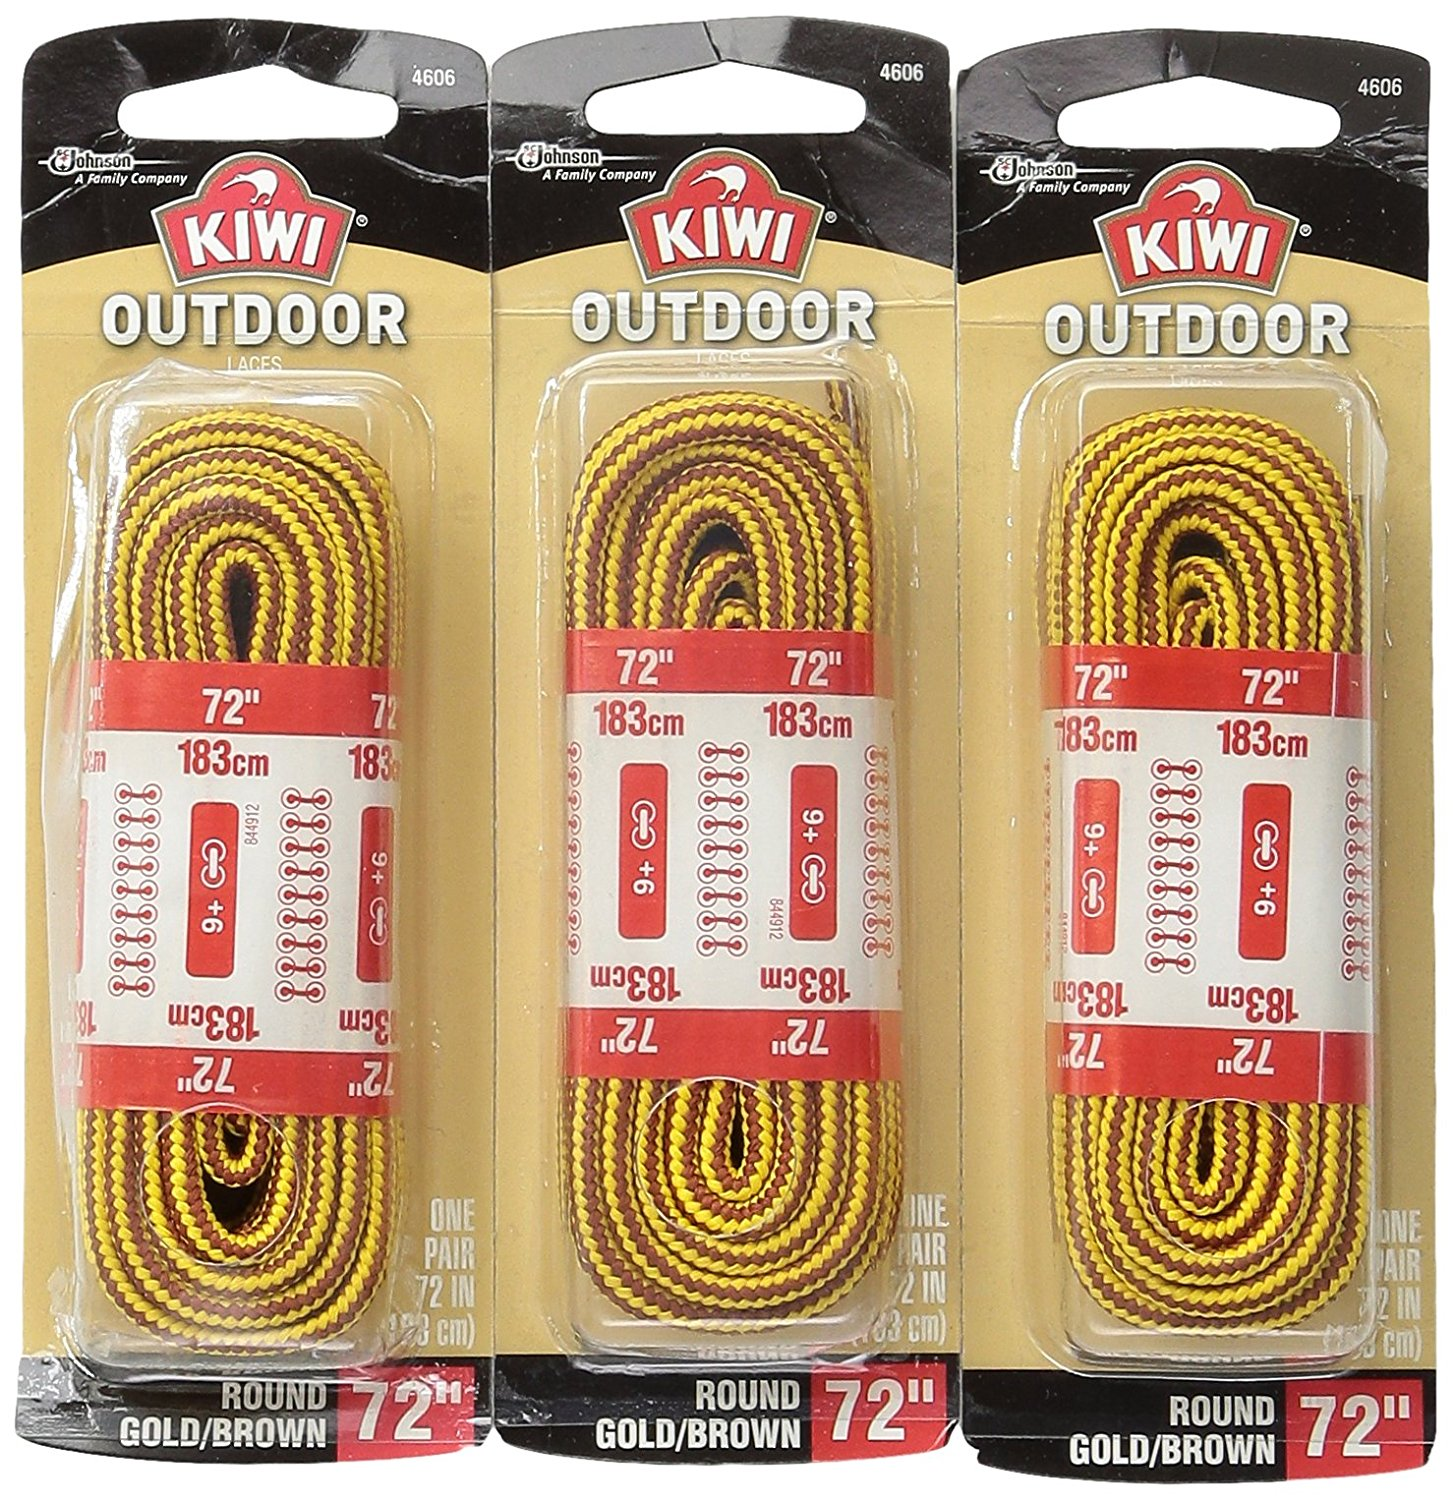 Outdoor Laces, 72-inch, Round, Gold and Brown, PR Nylon 66458 Shoes Count Black Boot Feira Glitter 54inch 3Pack Pack 10 70447 Sneakers 15 Portside Shoe leather Tent 2.., By Kiwi